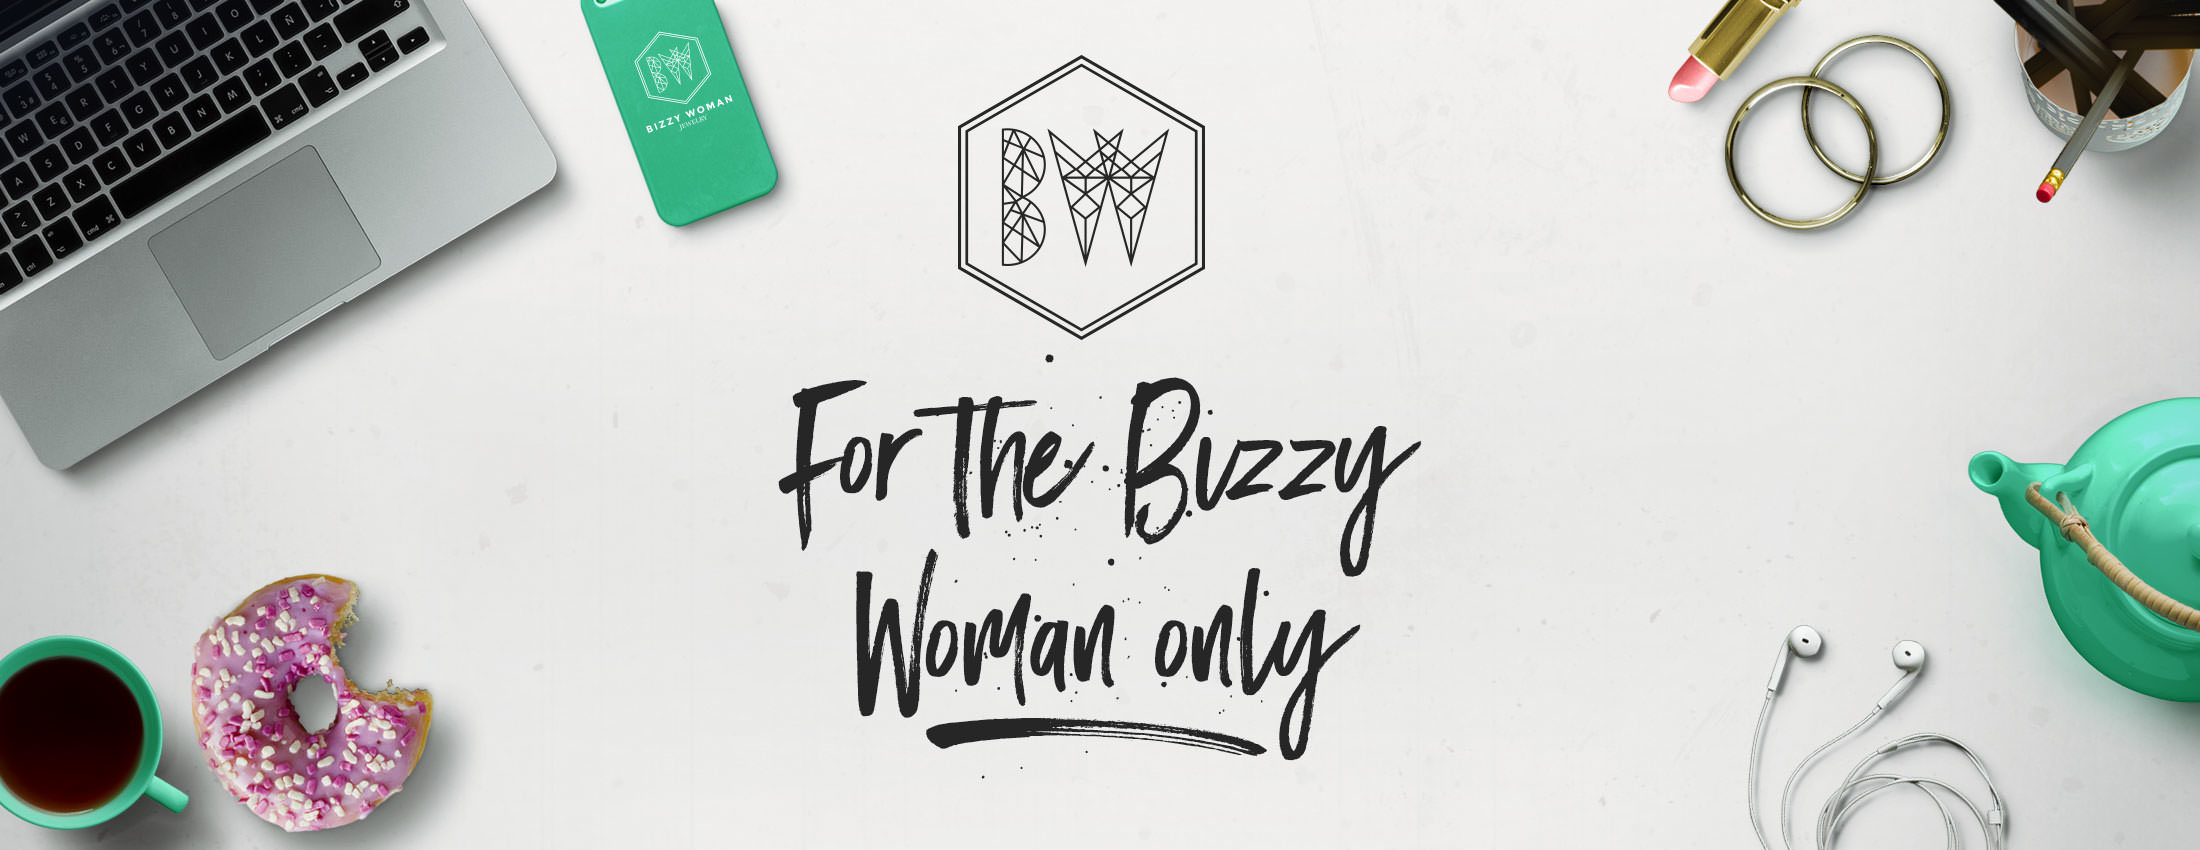 For the Bizzy Woman only